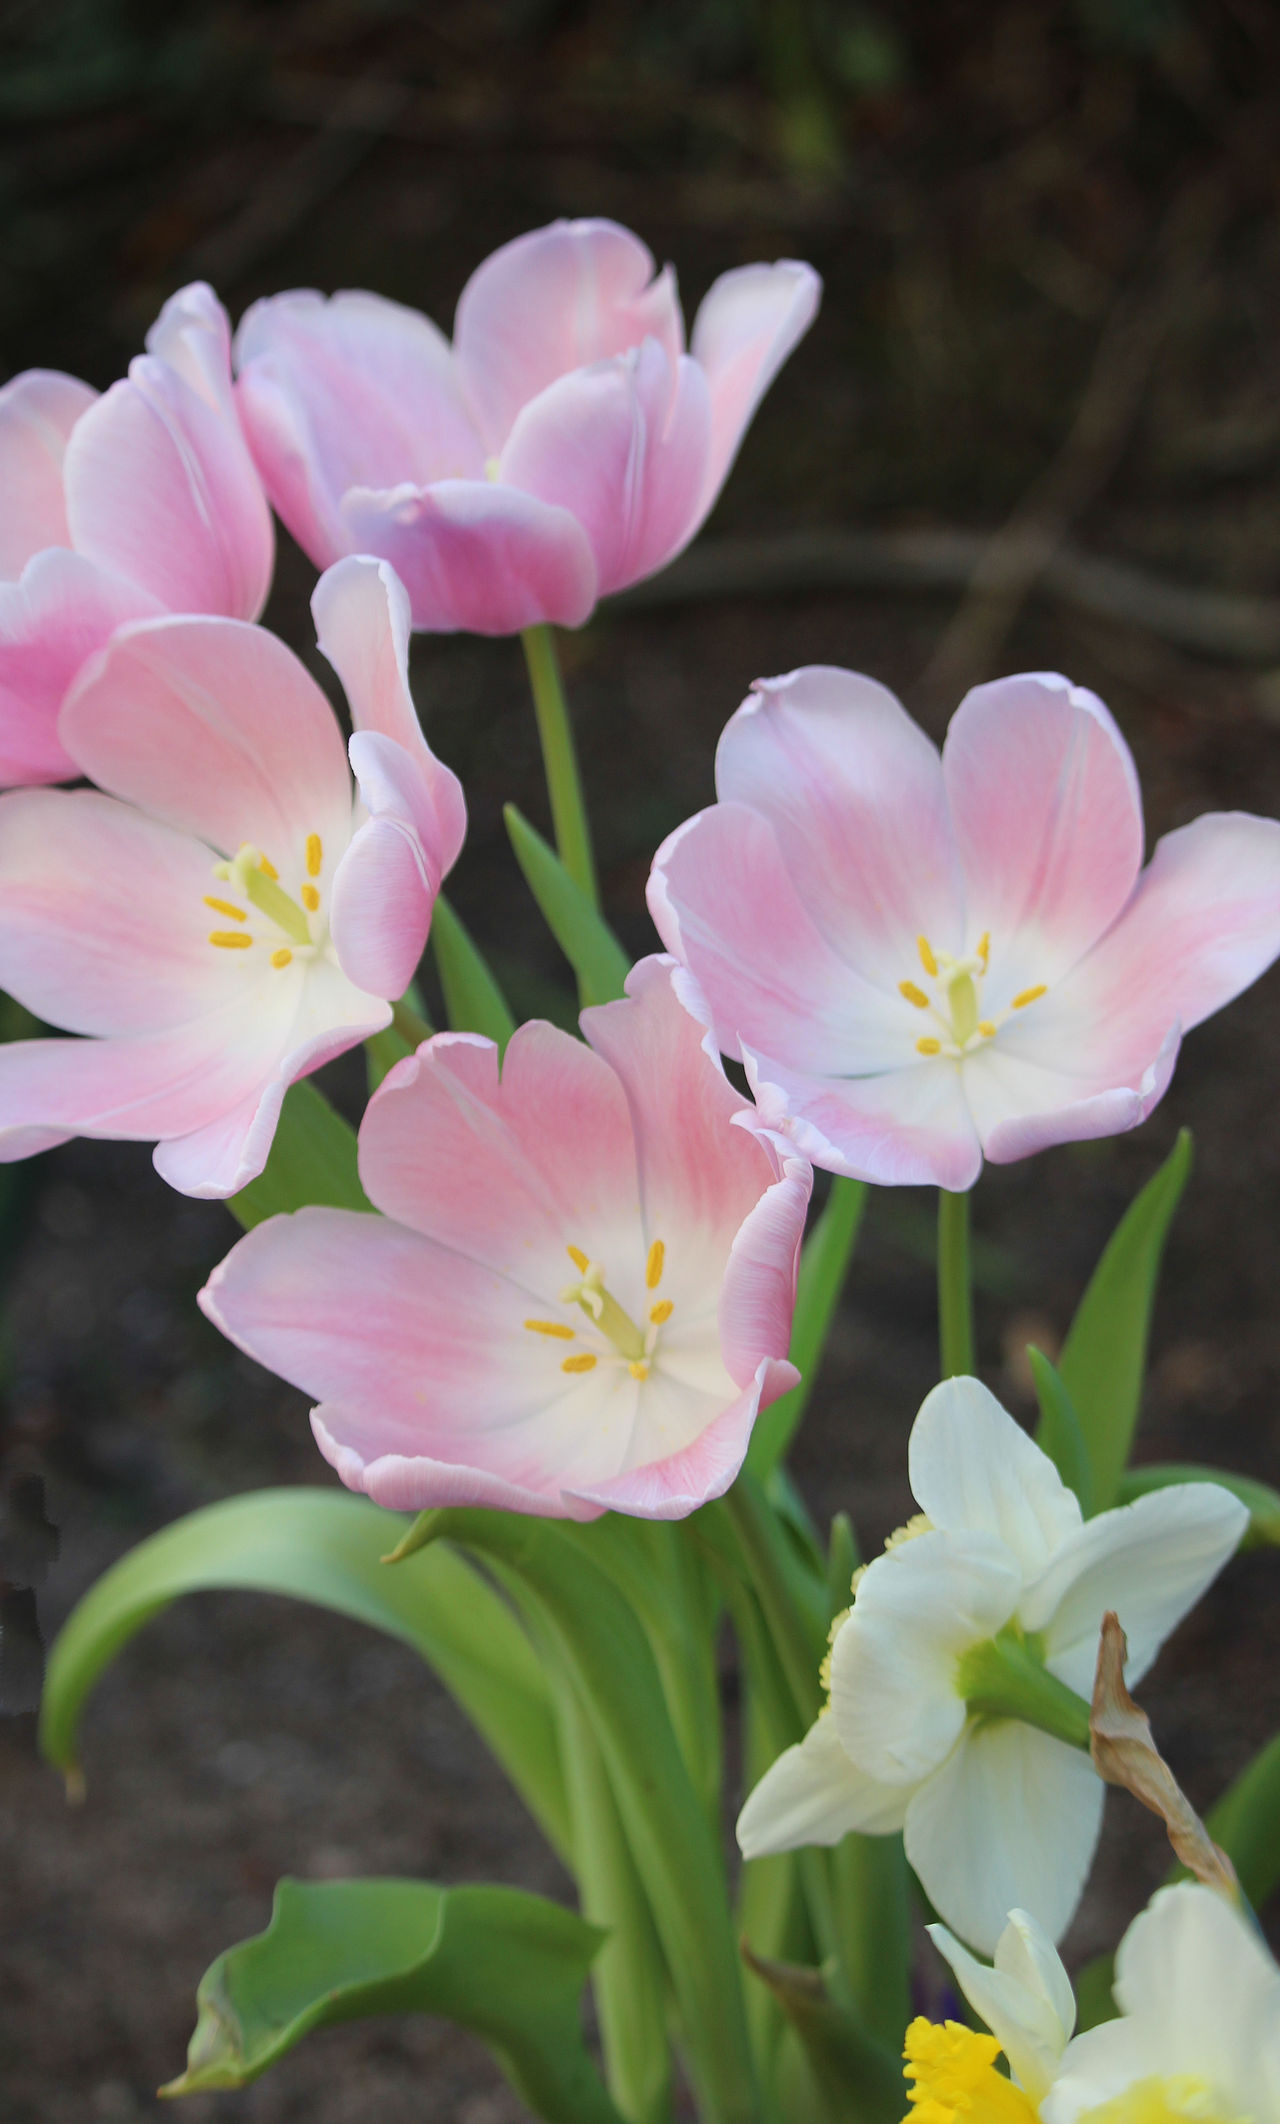 Pastel Colored Tulips Full Bloom Tulips OpenEdit Outstretched Tulip Outstretched Tulips Soft Pink Tulips Spring Tulip Tulips In The Su Pastel Power! Pastel Colors Pastel Colored Flowers